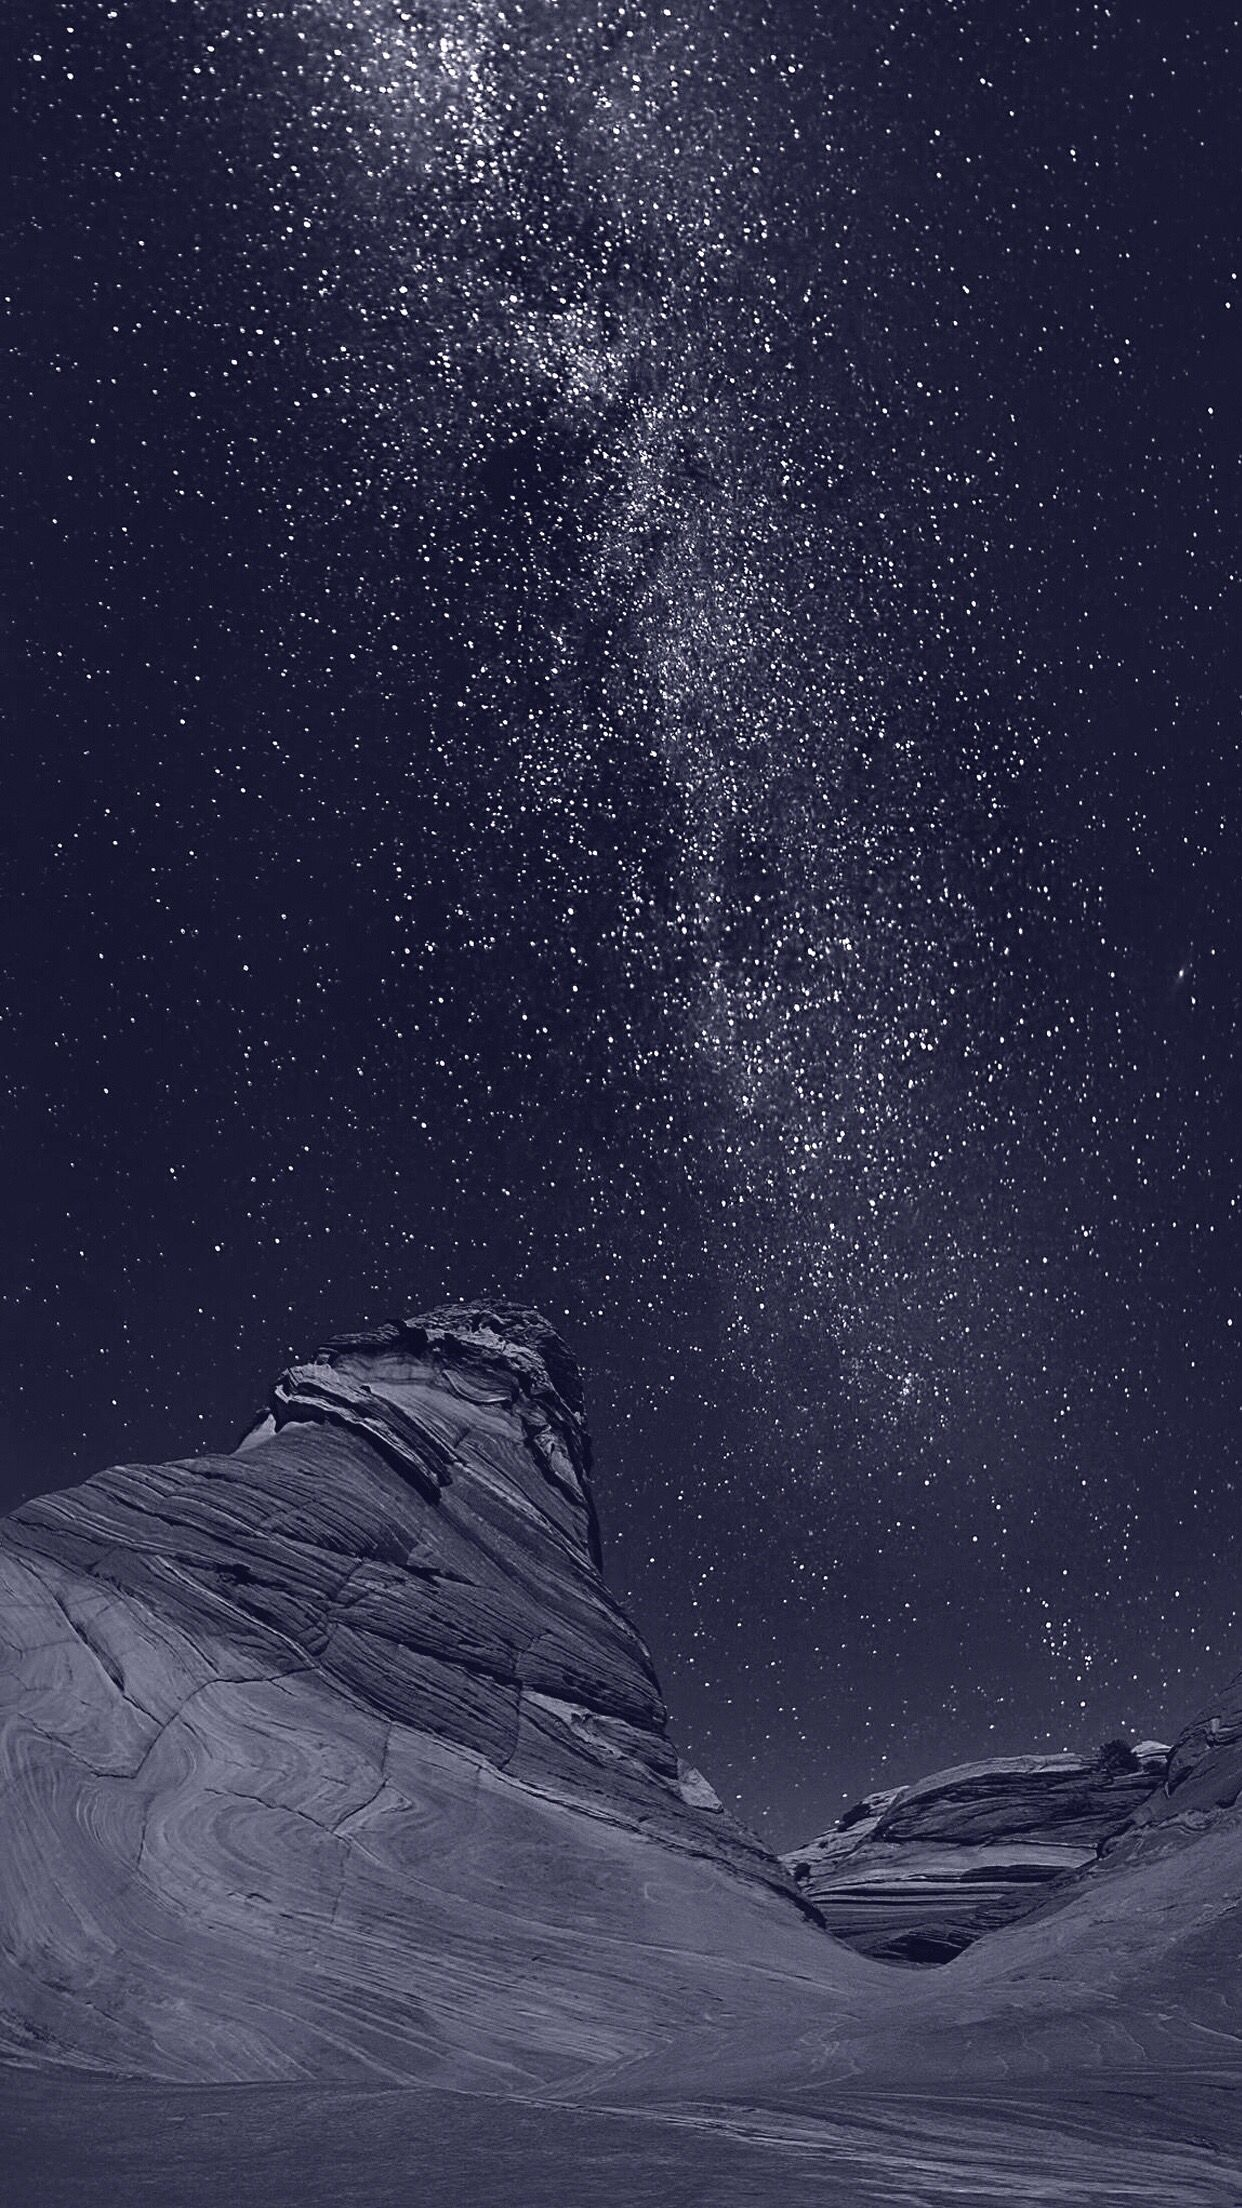 Iphone wallpaper iphone wallpapers in 2019 space - Space wallpaper iphone ...